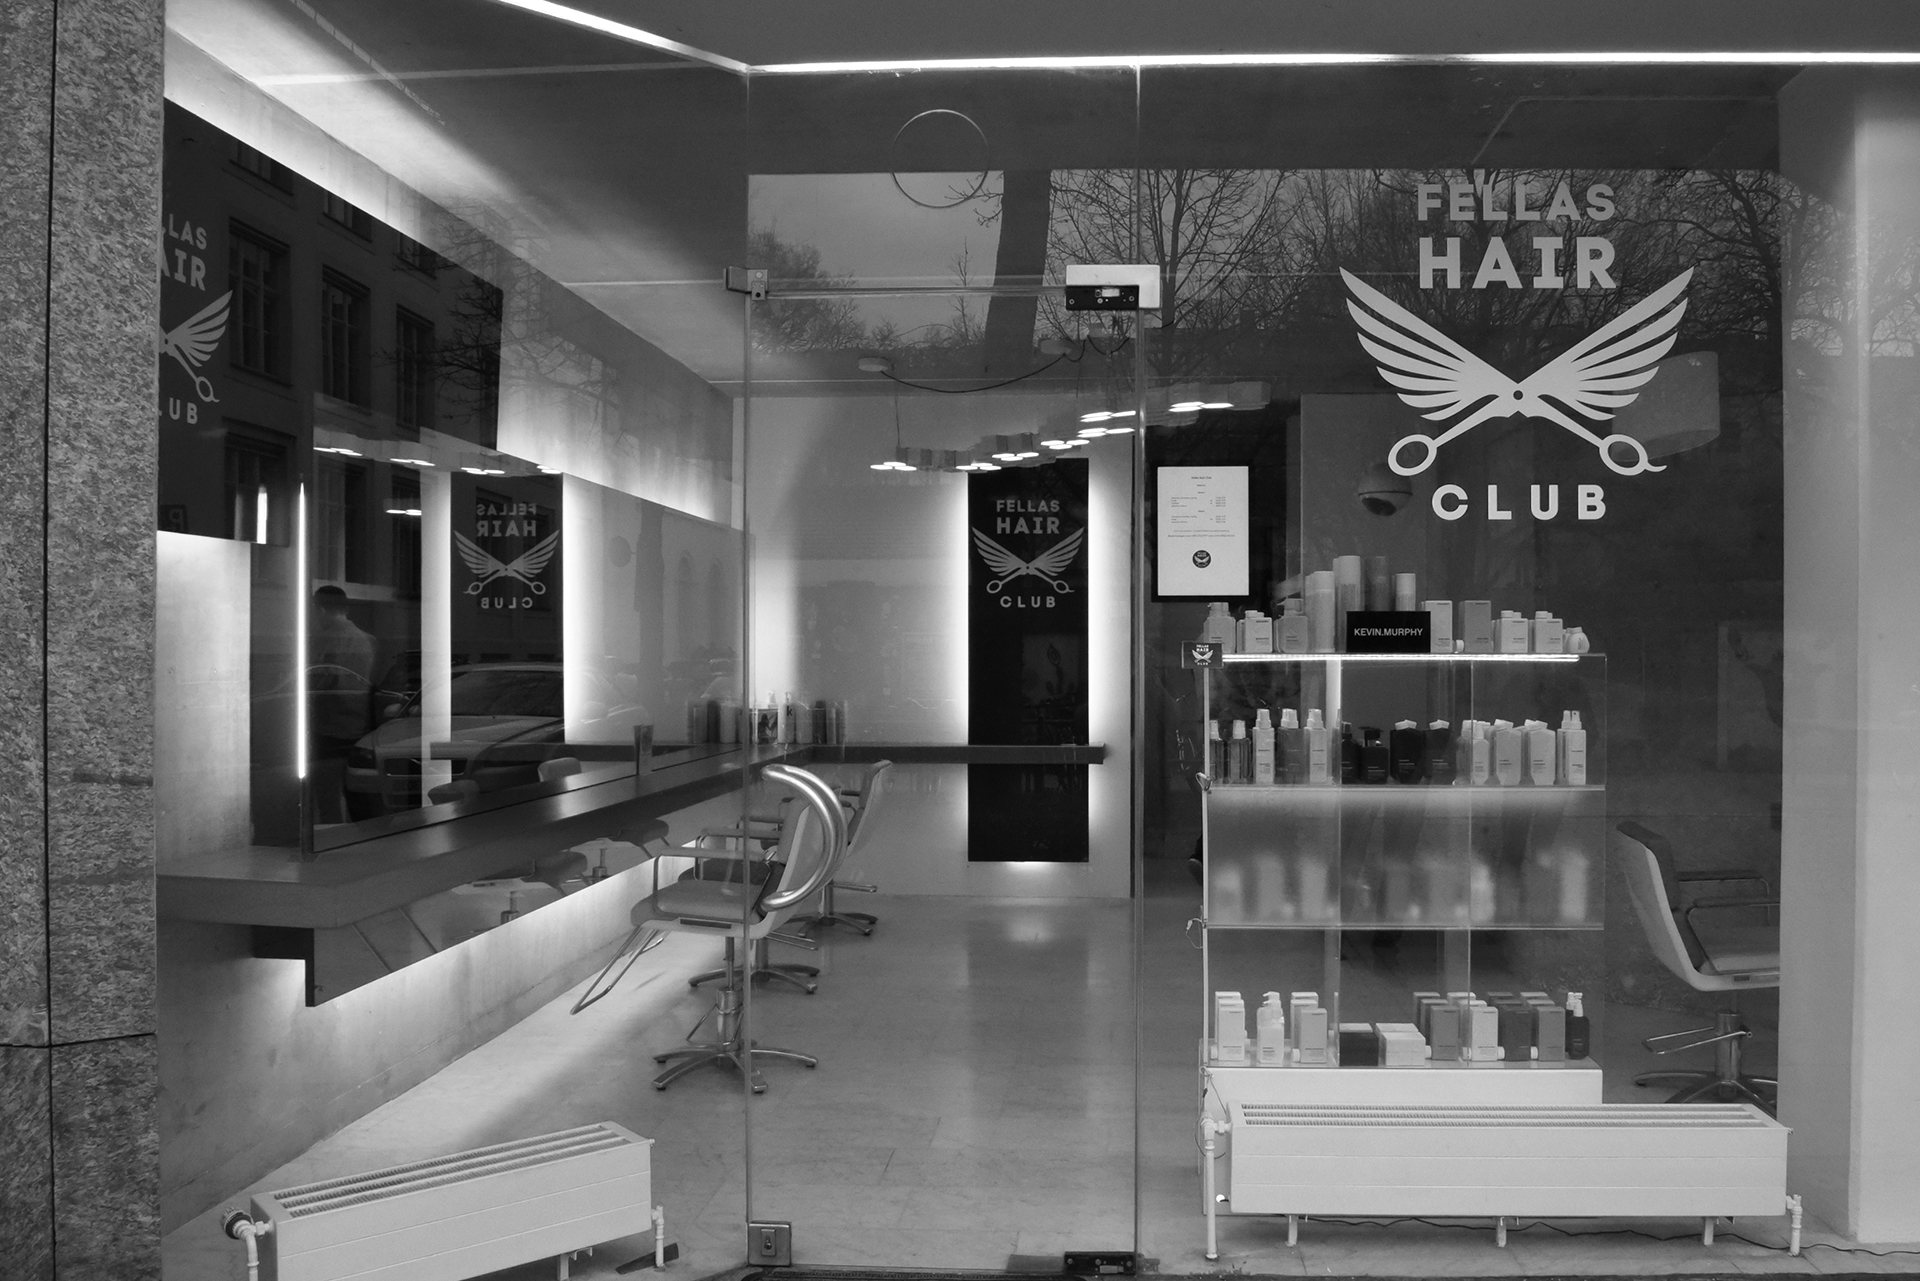 Fellas Hair Club, Klenzestraße in München